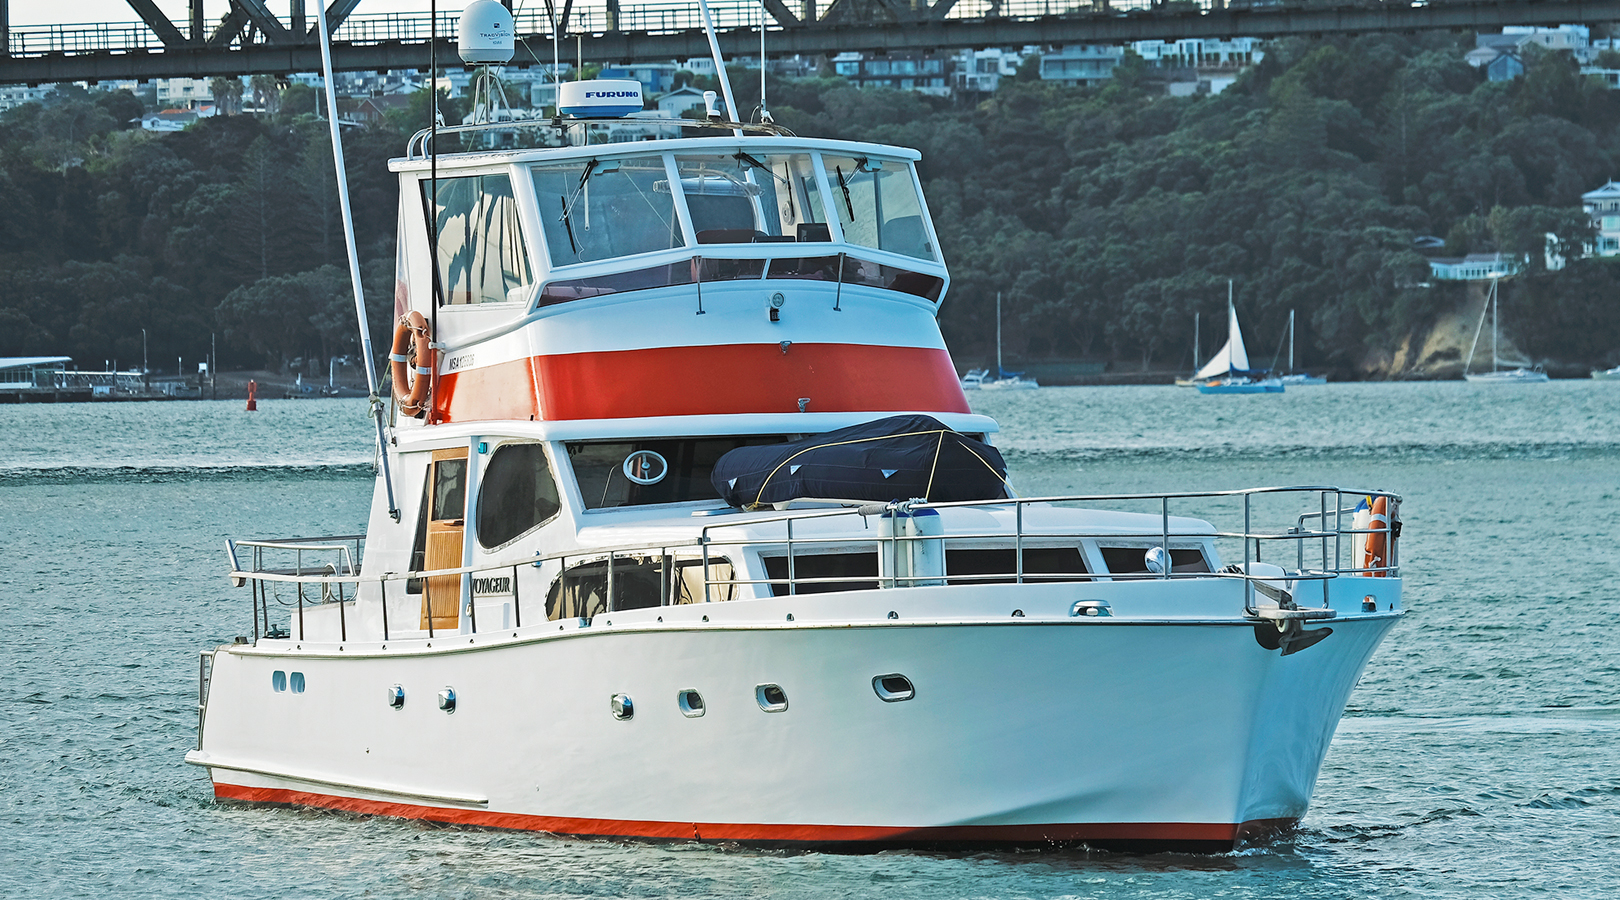 Auckland Luxury Yacht Charter | Voyageur Charters